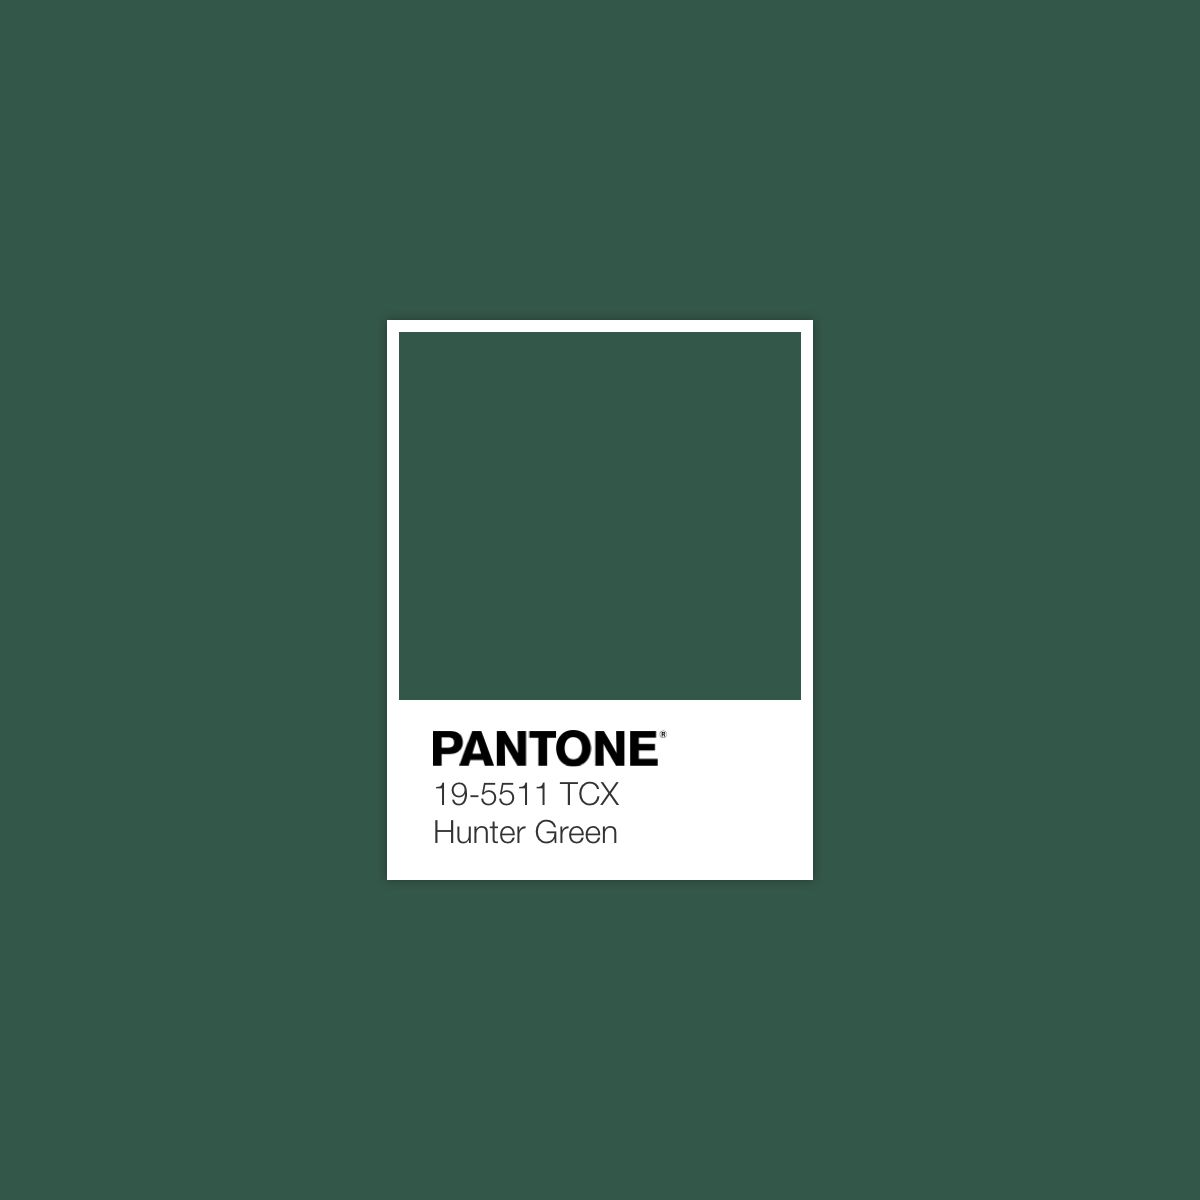 Christmas Green Color.A Christmas Eve Color Of The Day In 2019 Pantone Green